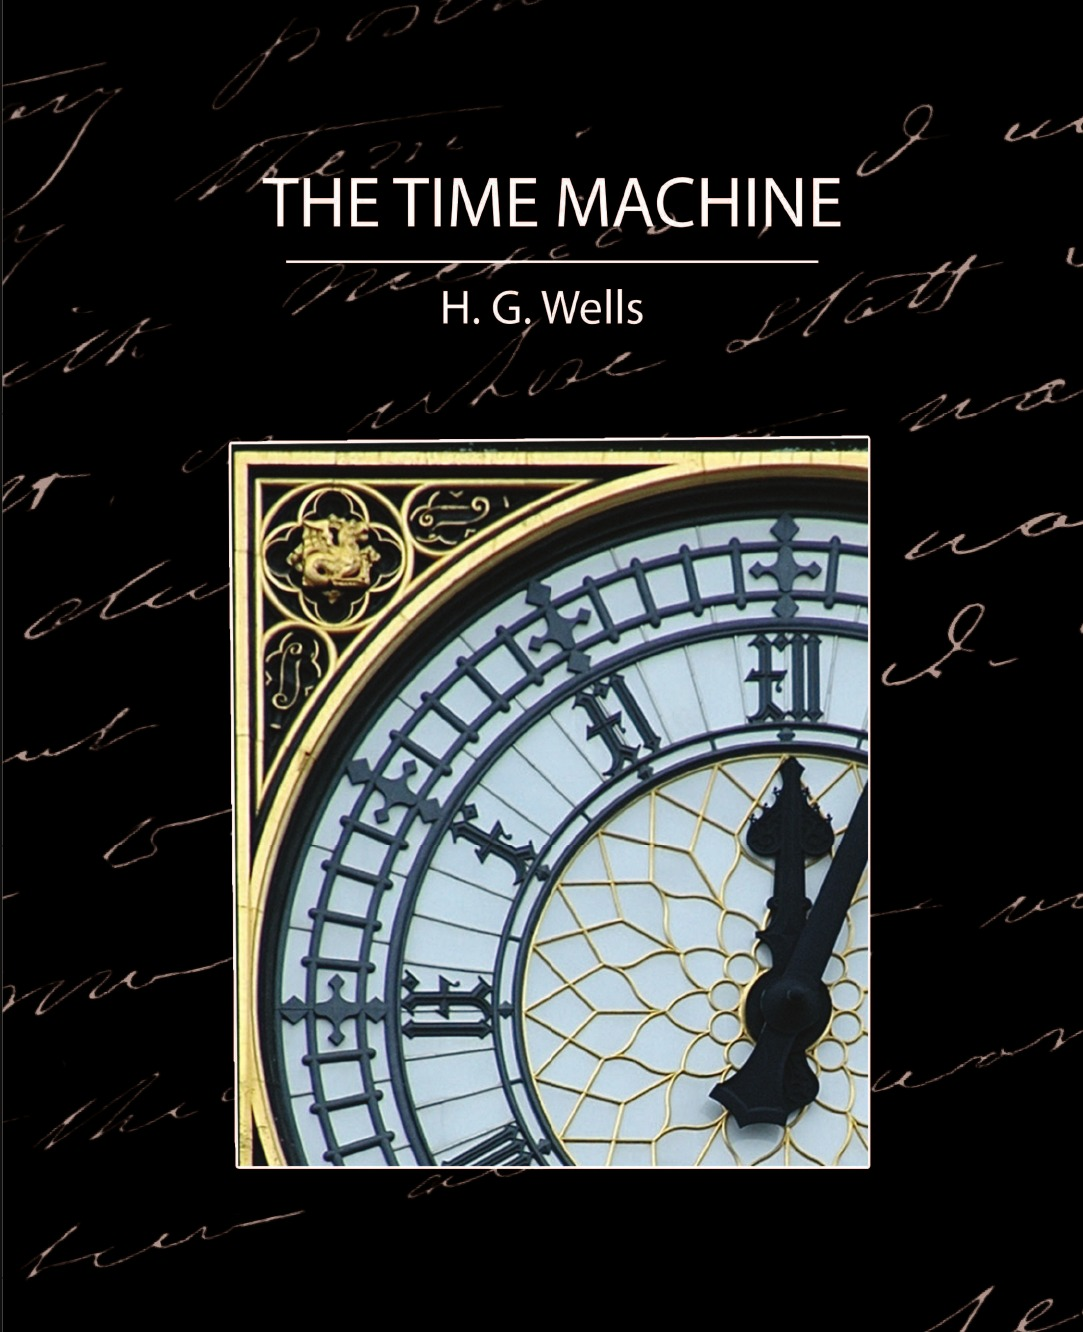 H. G. Wells, G. Wells H. G. Wells, H. G. Wells The Time Machine wells h g the passionate friends страстная дружба на англ яз